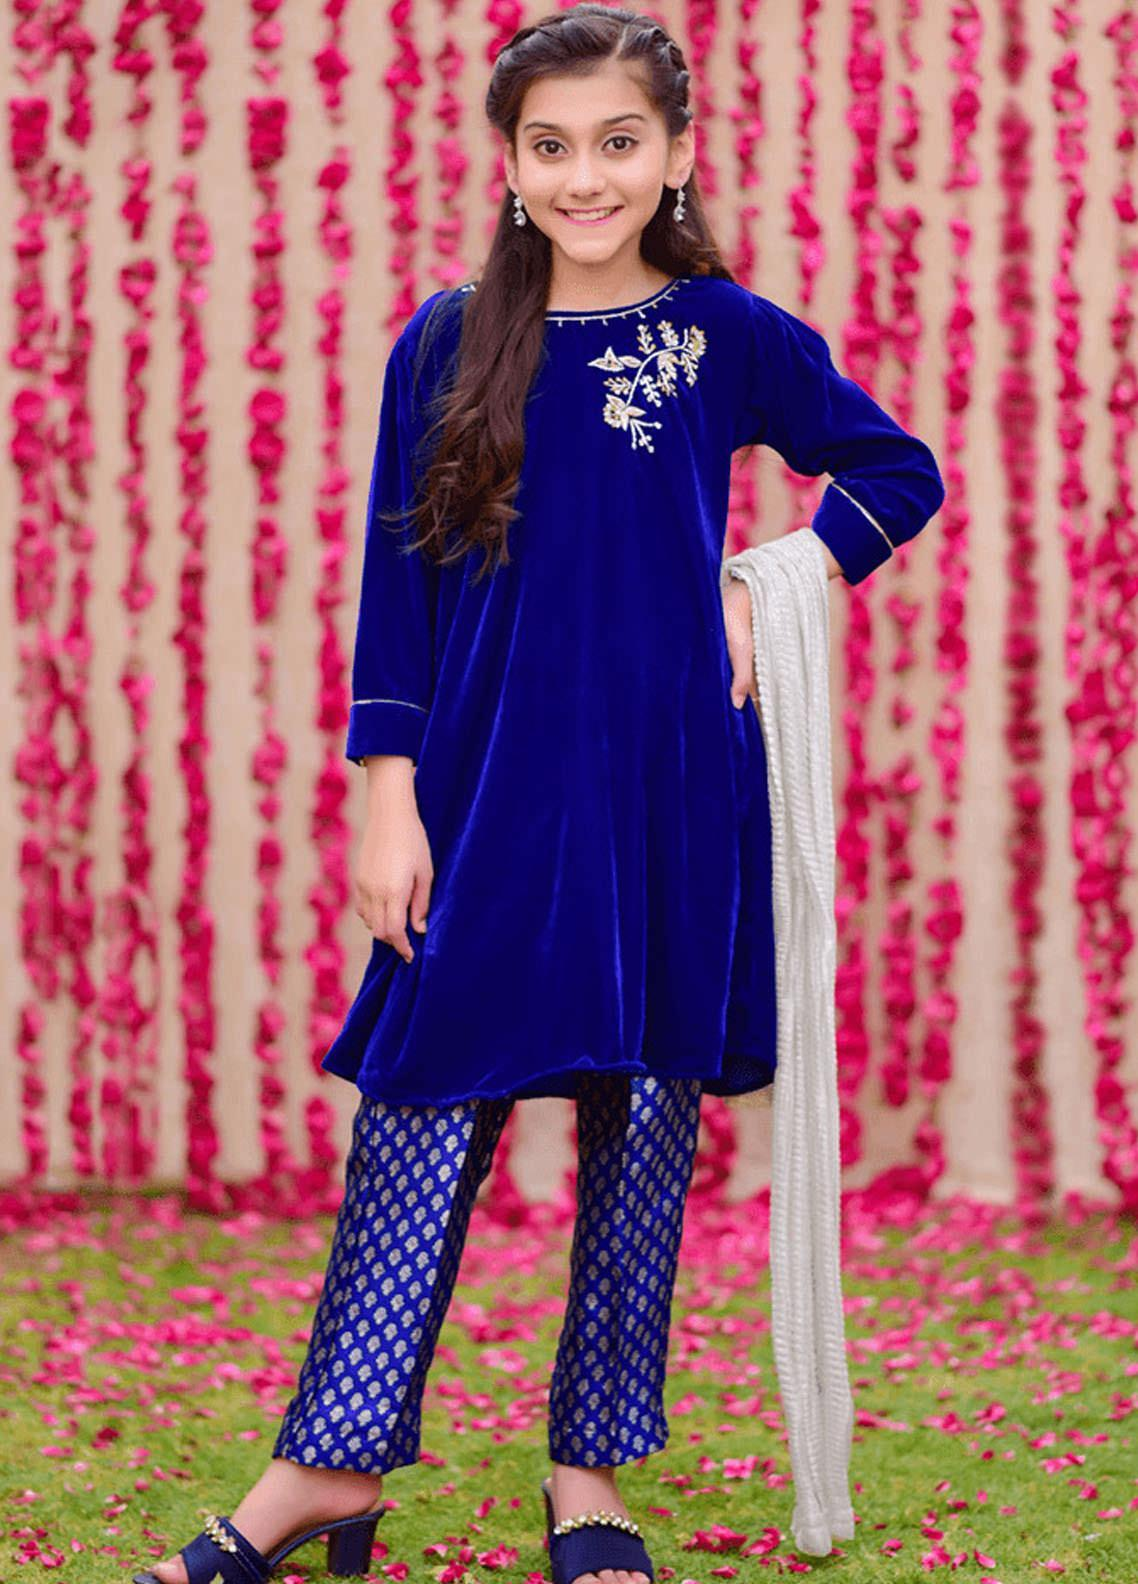 Ochre Velvet Fancy 3 Piece Suits for Girls -  OVF-12 ROYAL BLUE